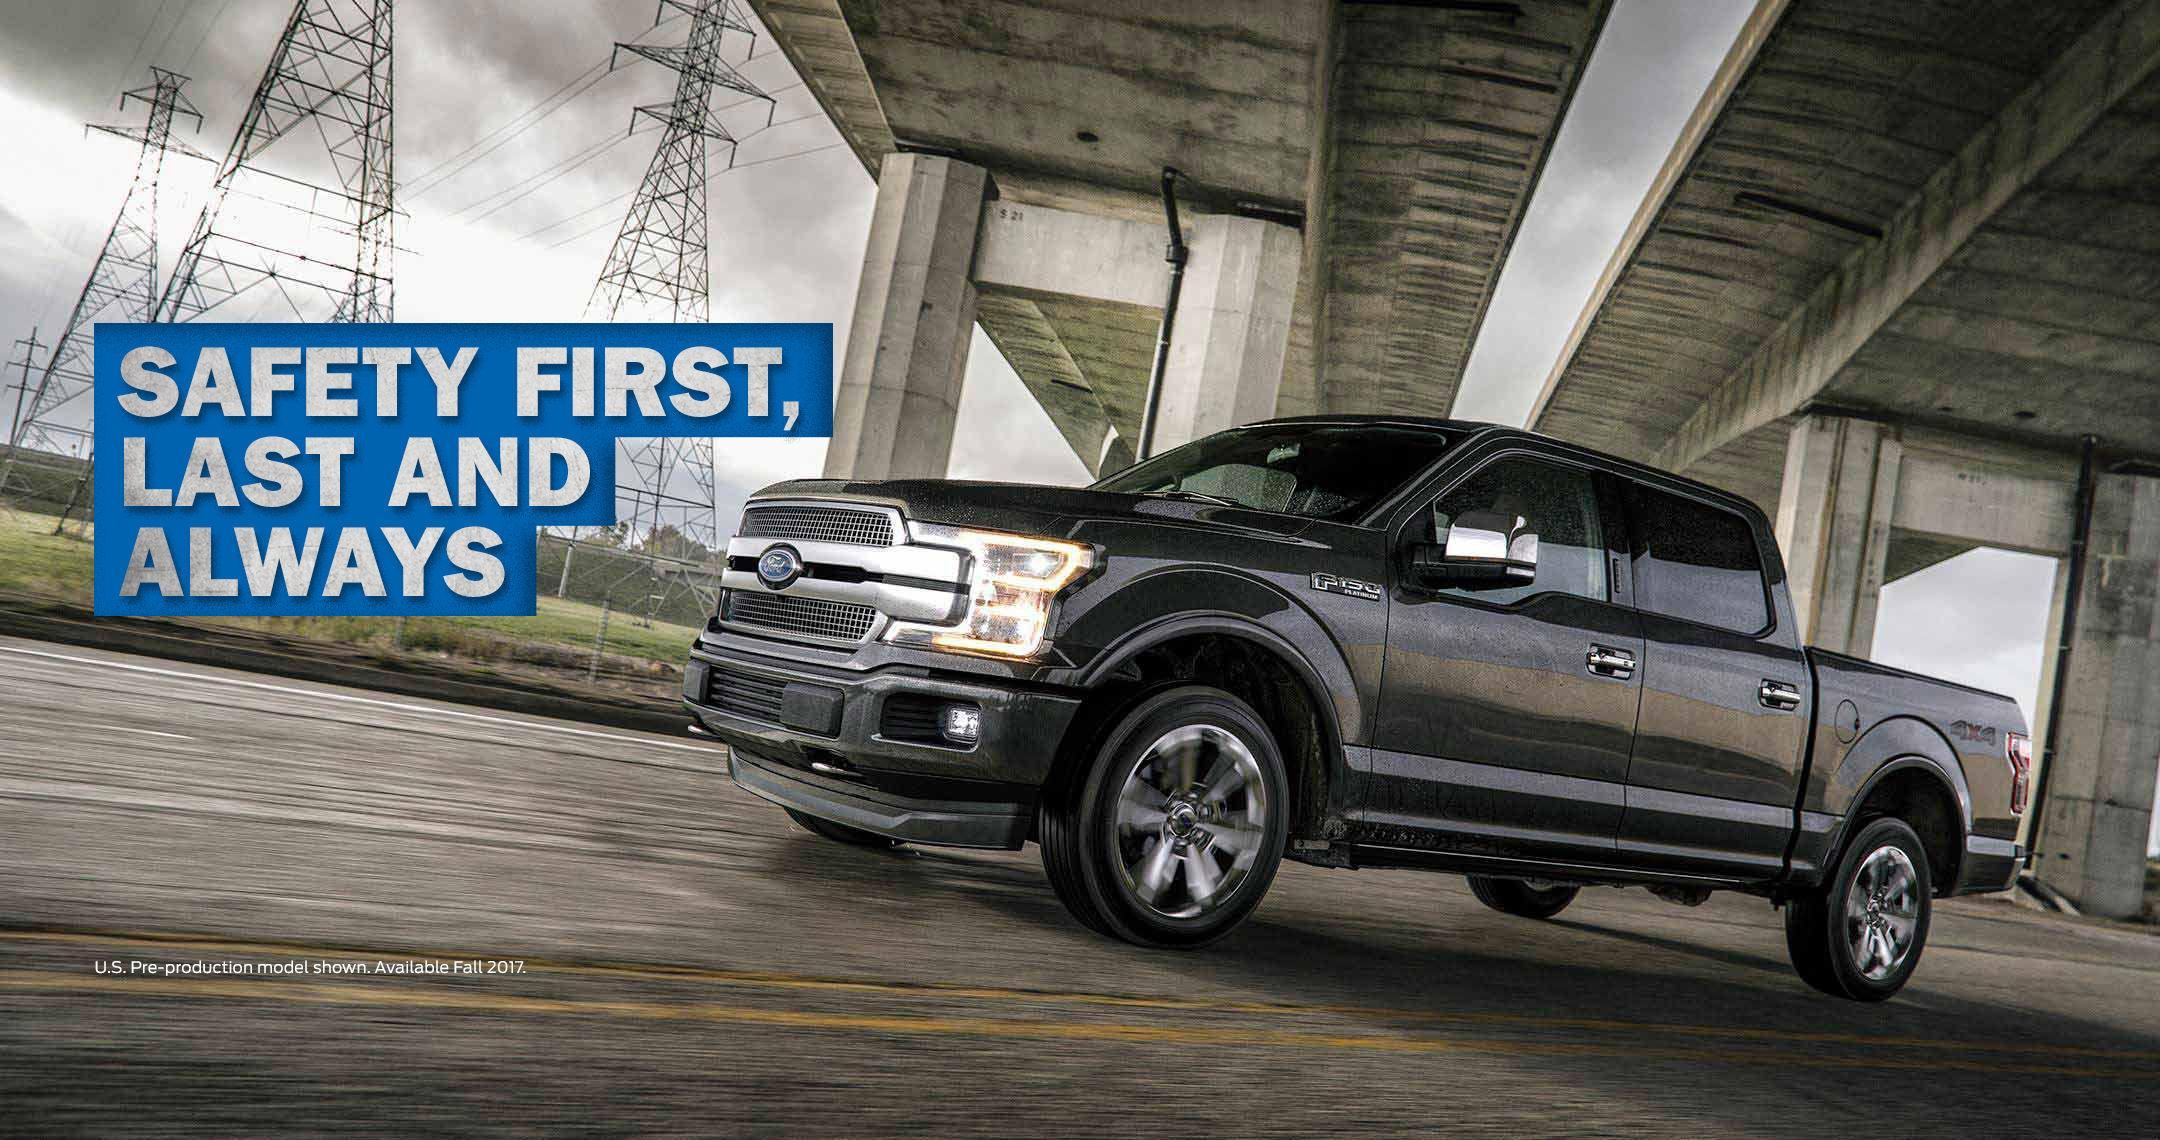 2018 F-150 Safety First